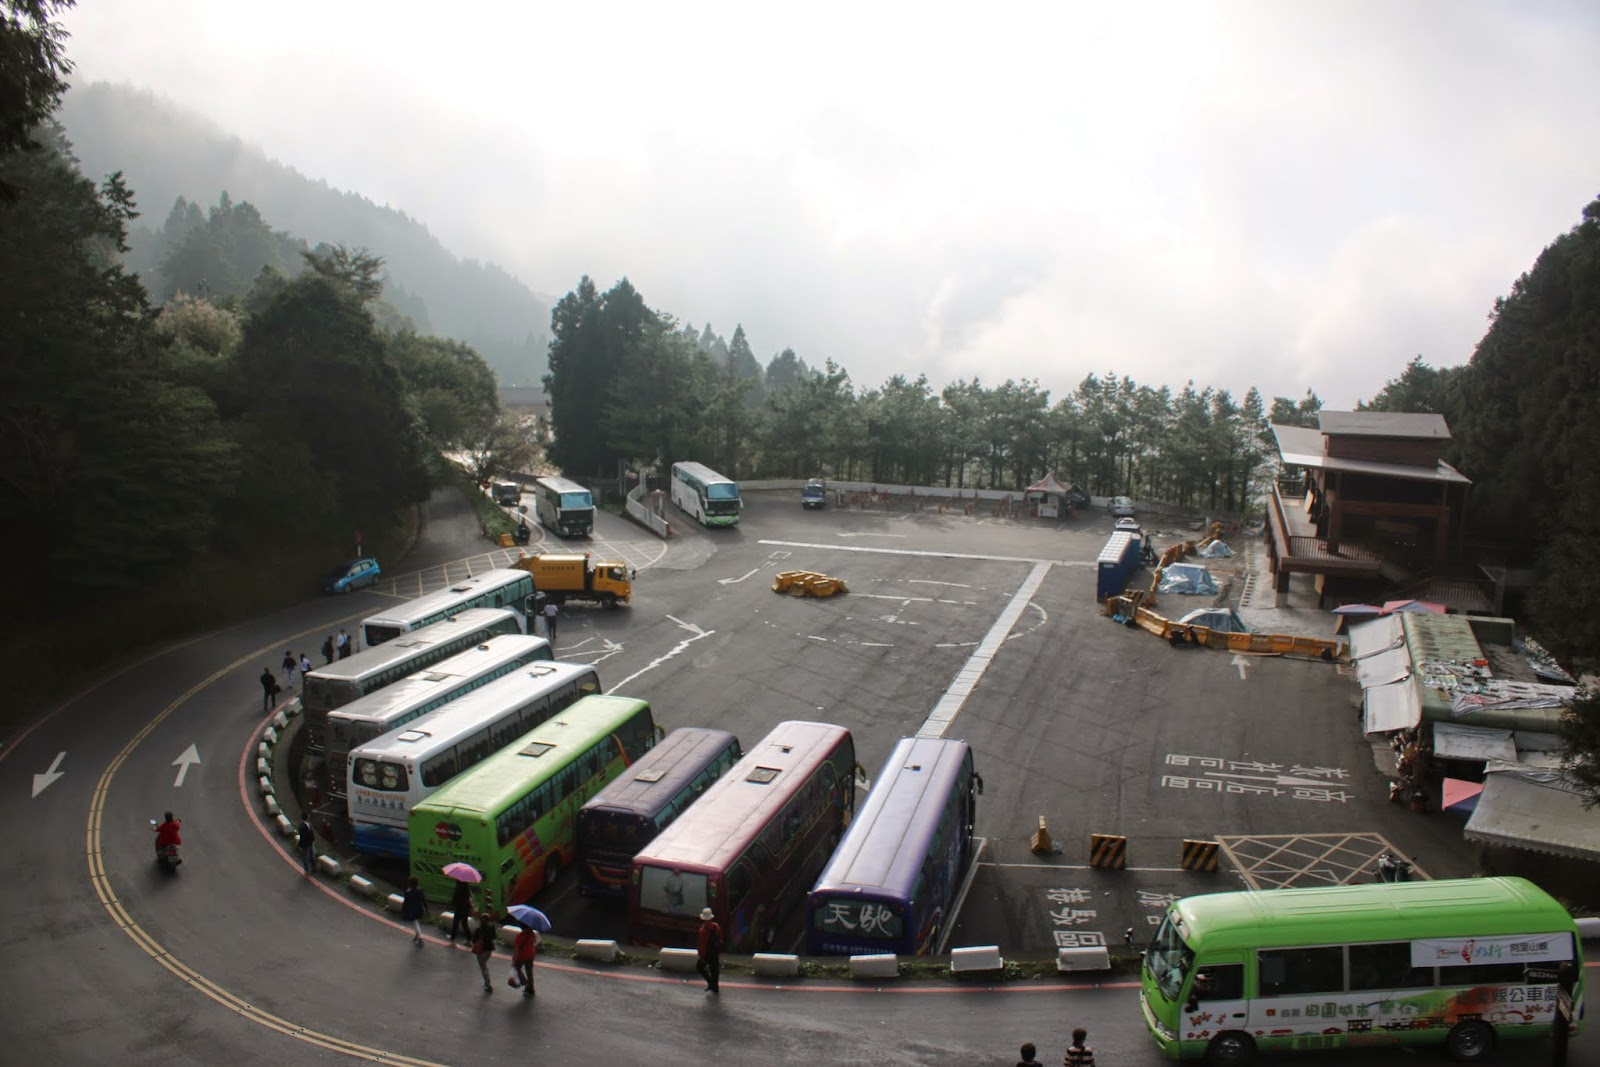 By evening, most of tour buses begin to leave Alishan National Scenic Area in Chiayi County of Taiwan